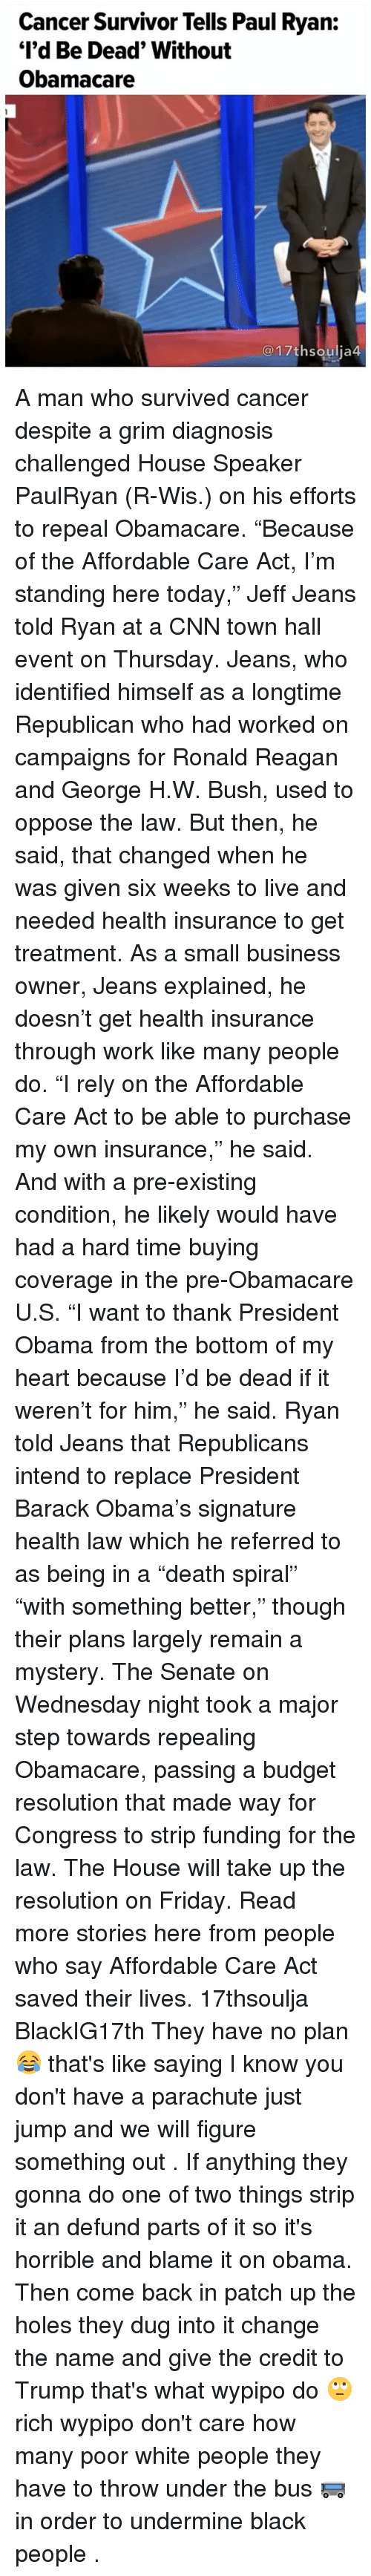 """affordable care act: Cancer Survivor Tells Paul Ryan:  """"I'd Be Dead"""" Without  Obamacare  17th Soulia4 A man who survived cancer despite a grim diagnosis challenged House Speaker PaulRyan (R-Wis.) on his efforts to repeal Obamacare. """"Because of the Affordable Care Act, I'm standing here today,"""" Jeff Jeans told Ryan at a CNN town hall event on Thursday. Jeans, who identified himself as a longtime Republican who had worked on campaigns for Ronald Reagan and George H.W. Bush, used to oppose the law. But then, he said, that changed when he was given six weeks to live and needed health insurance to get treatment. As a small business owner, Jeans explained, he doesn't get health insurance through work like many people do. """"I rely on the Affordable Care Act to be able to purchase my own insurance,"""" he said. And with a pre-existing condition, he likely would have had a hard time buying coverage in the pre-Obamacare U.S. """"I want to thank President Obama from the bottom of my heart because I'd be dead if it weren't for him,"""" he said. Ryan told Jeans that Republicans intend to replace President Barack Obama's signature health law― which he referred to as being in a """"death spiral""""― """"with something better,"""" though their plans largely remain a mystery. The Senate on Wednesday night took a major step towards repealing Obamacare, passing a budget resolution that made way for Congress to strip funding for the law. The House will take up the resolution on Friday. Read more stories here from people who say Affordable Care Act saved their lives. 17thsoulja BlackIG17th They have no plan 😂 that's like saying I know you don't have a parachute just jump and we will figure something out . If anything they gonna do one of two things strip it an defund parts of it so it's horrible and blame it on obama. Then come back in patch up the holes they dug into it change the name and give the credit to Trump that's what wypipo do 🙄 rich wypipo don't care how many poor white people they have to throw u"""